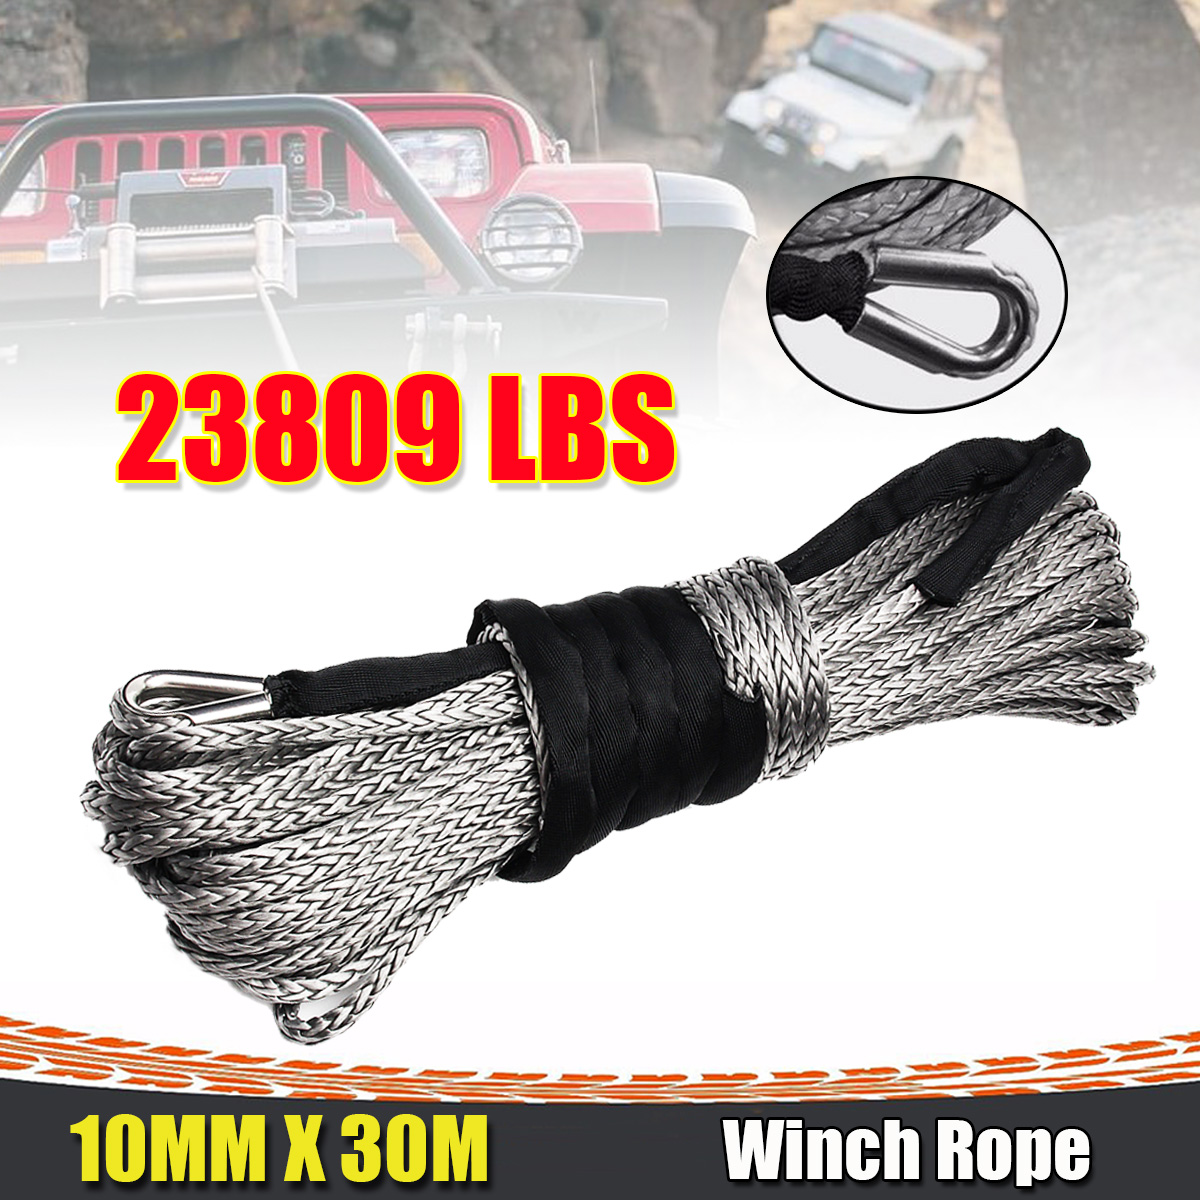 10mm x 30m 23000LBS 2/5 x 100ft Synthetic Winch Rope Line Grey Recovery Cable 4WD ATV Heavy Duty atv recovery strap 1 inch x 15 ft single ply